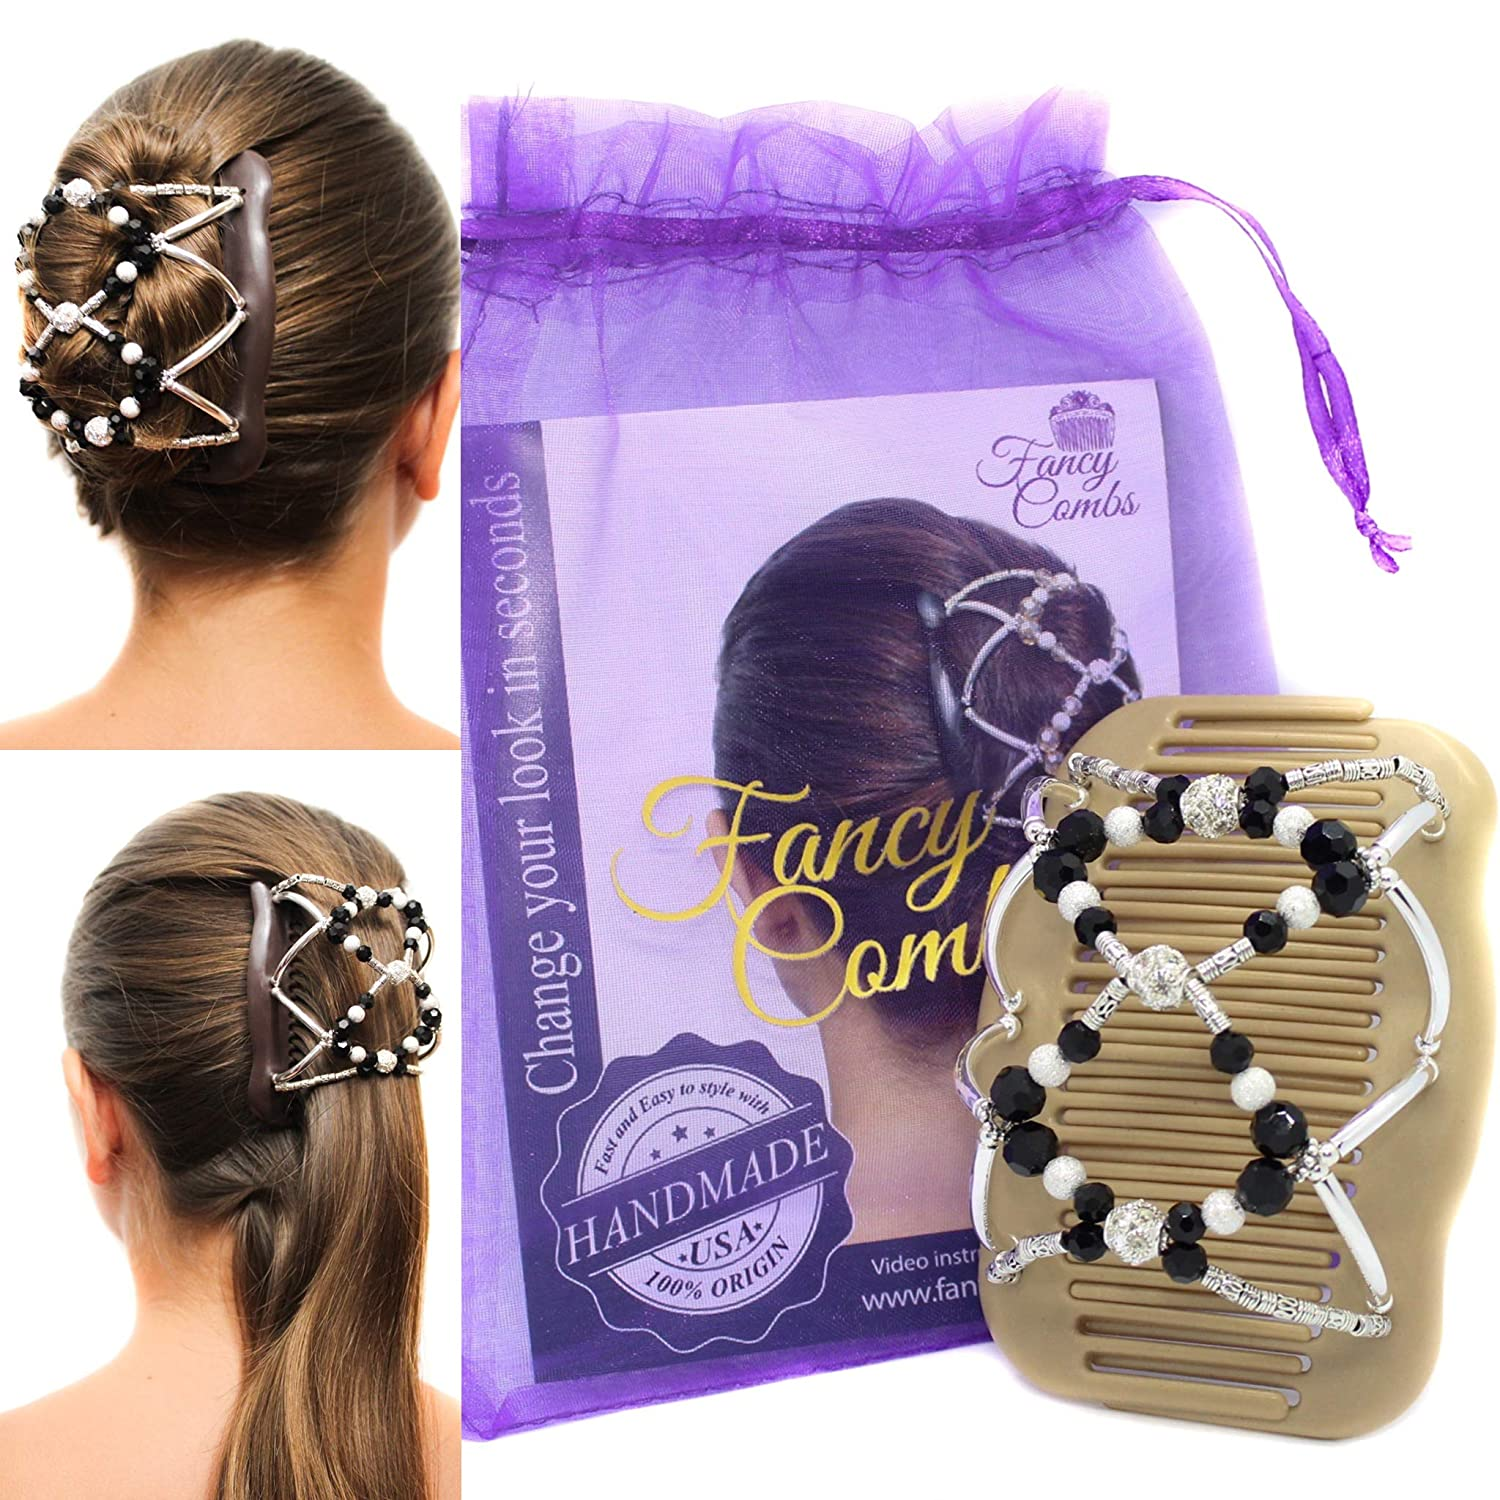 Amazon Com Fancy Combs Hair Clip Combs Hair Accessories For Women And Girls Premium Beaded Double Magic Hair Combs For Thin Or Thick Hair Long Or Short Instant Bun Maker